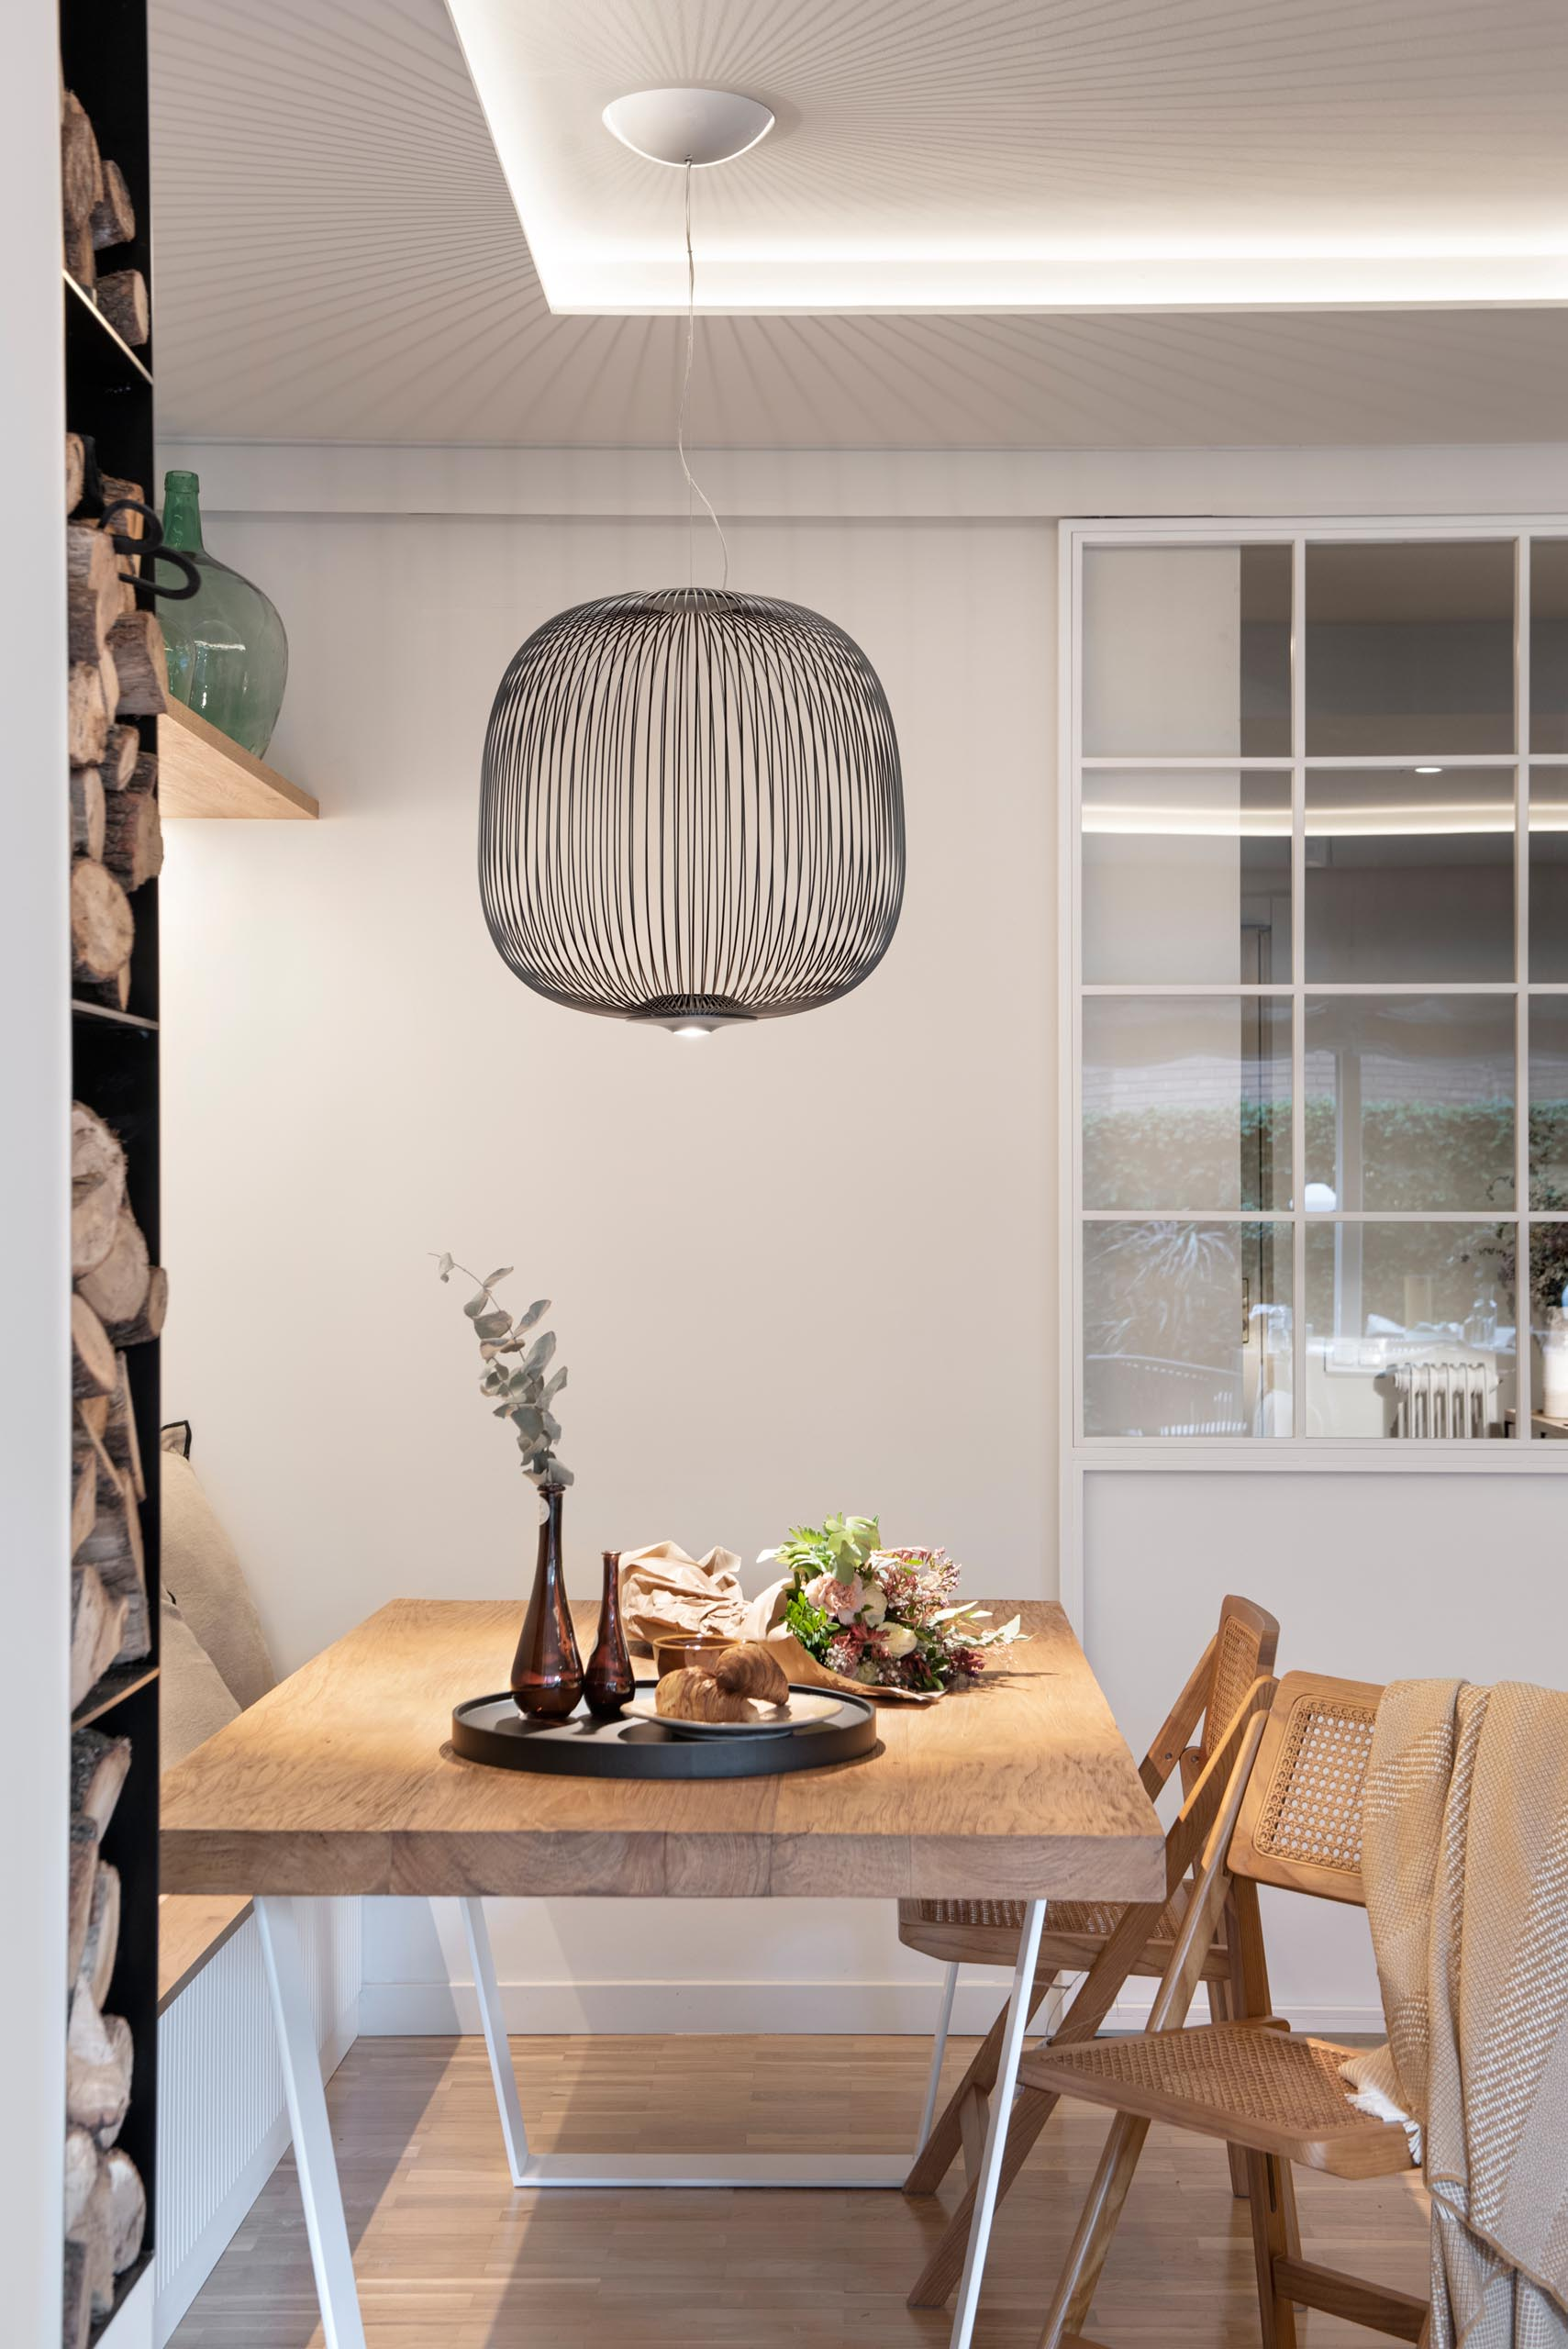 This open plan dining area includes a long bench against the wall, a wood table with wood chairs, a pendant light that gives of lined shadows, and a wood shelf with hidden lighting underneath.